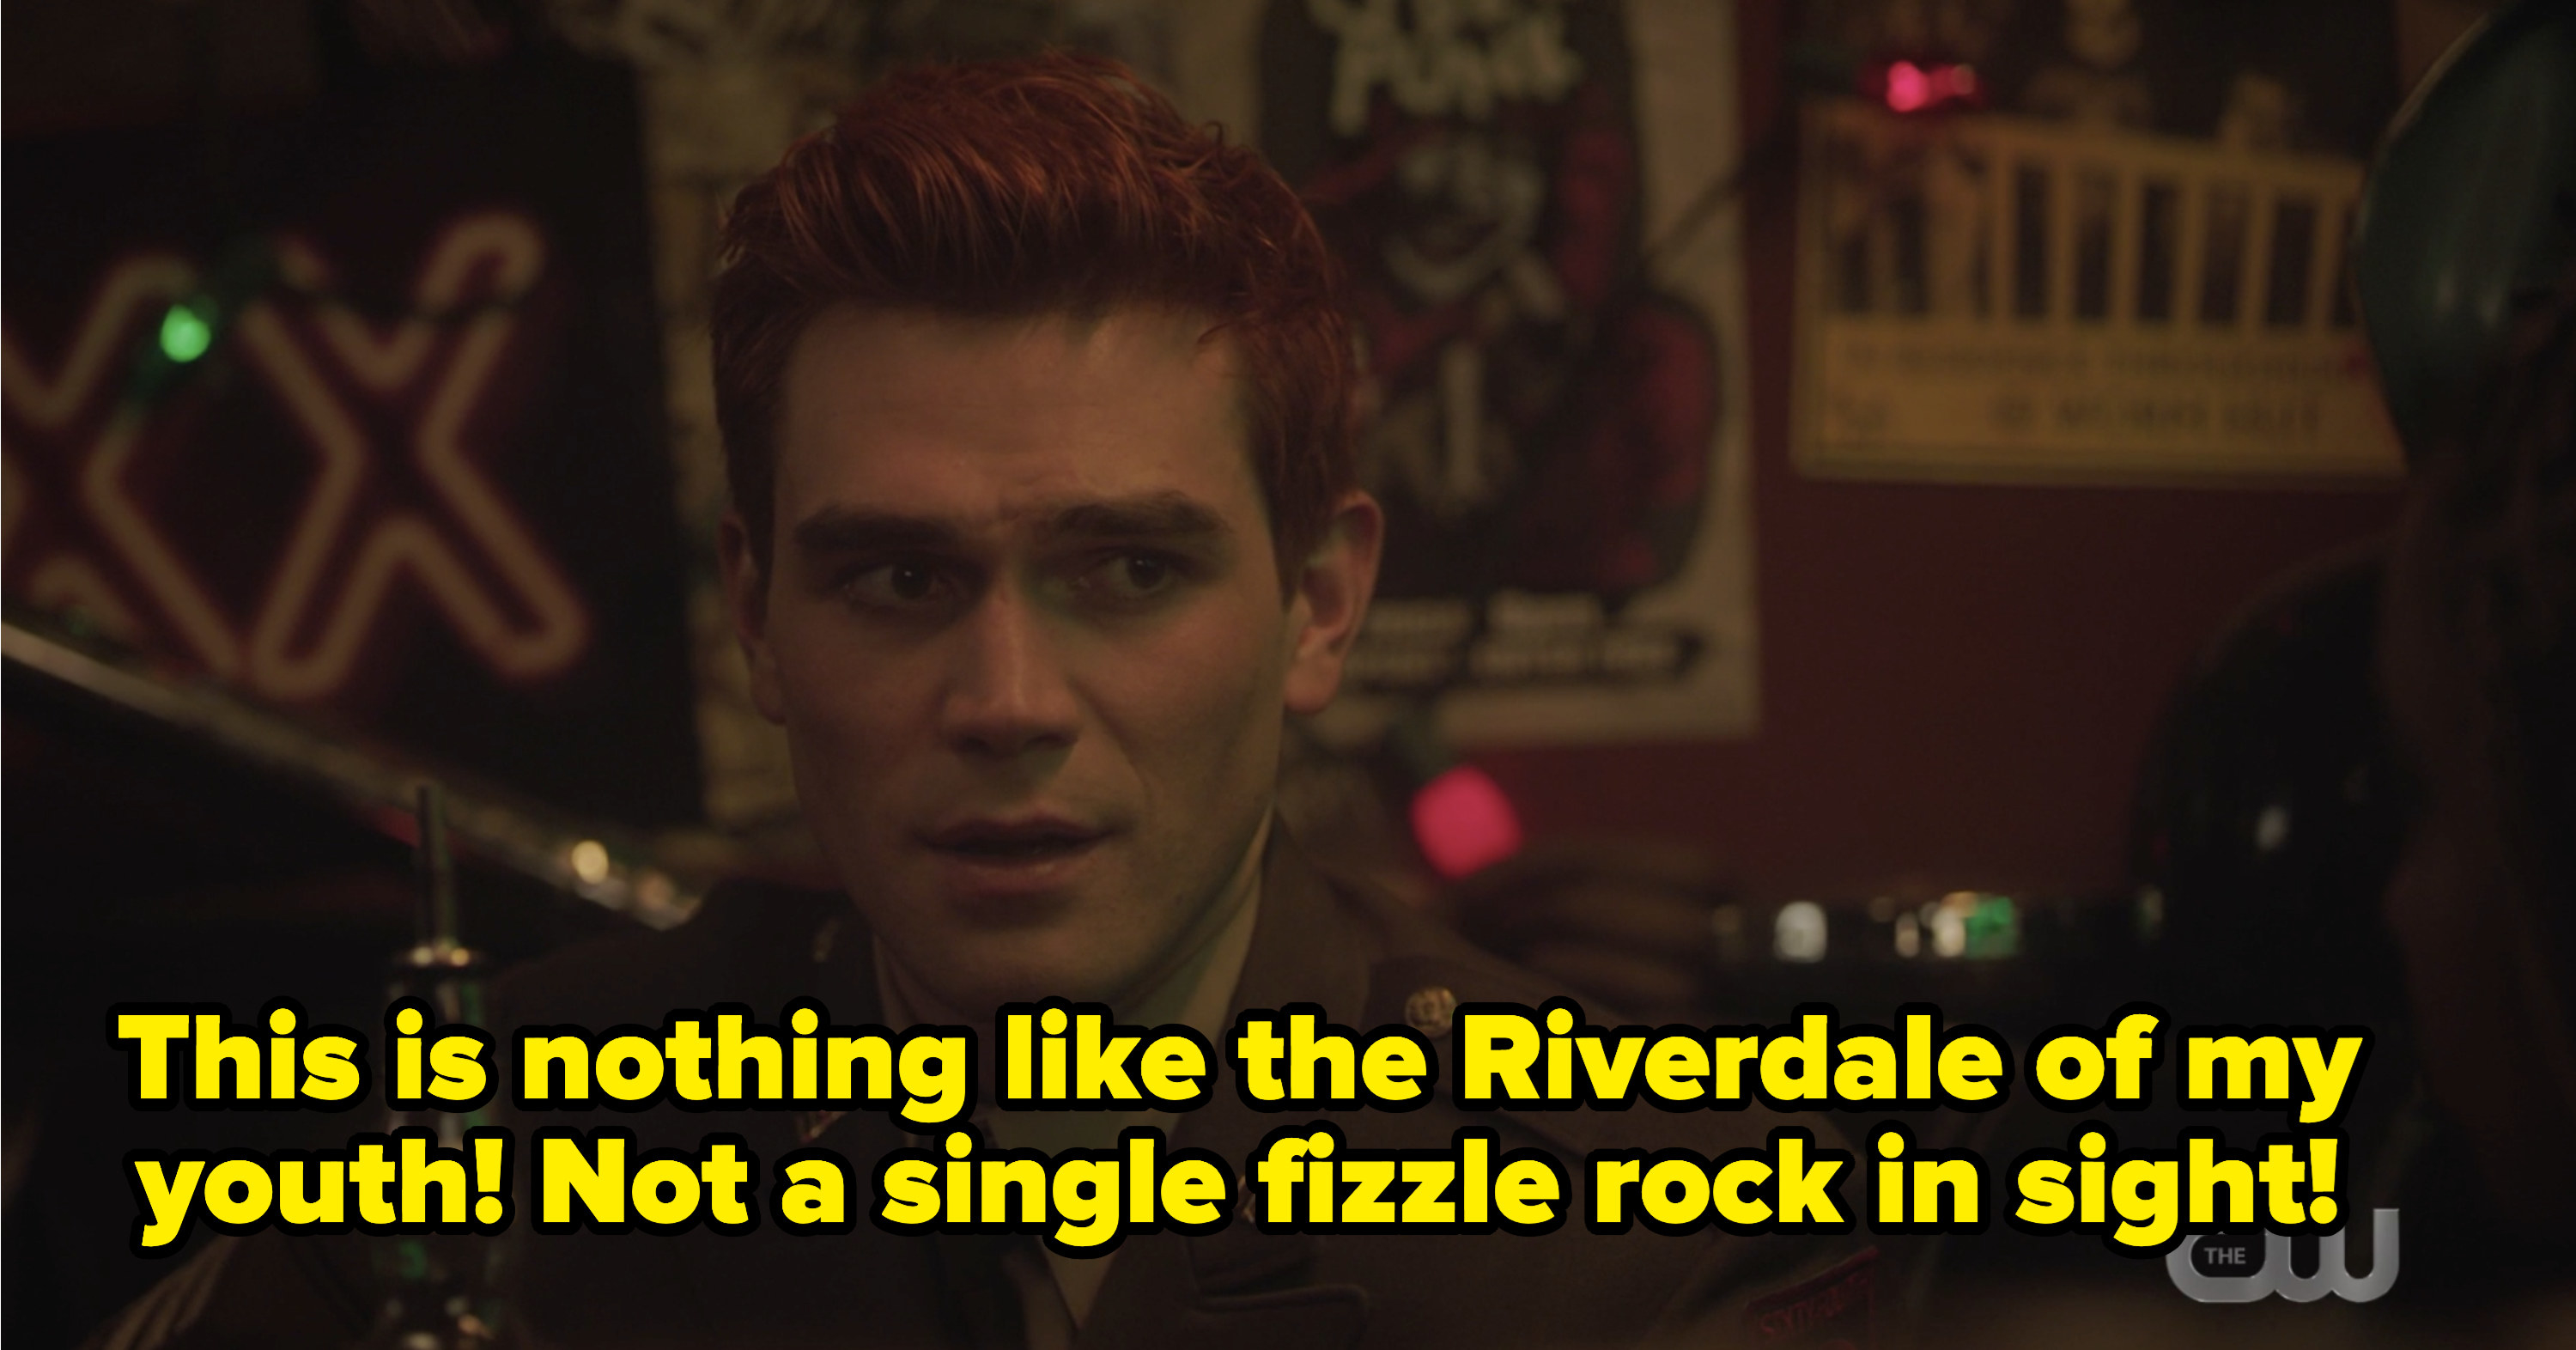 Archie with the caption: This is nothing like the Riverdale of my youth! not a single fizzle rock in sight!